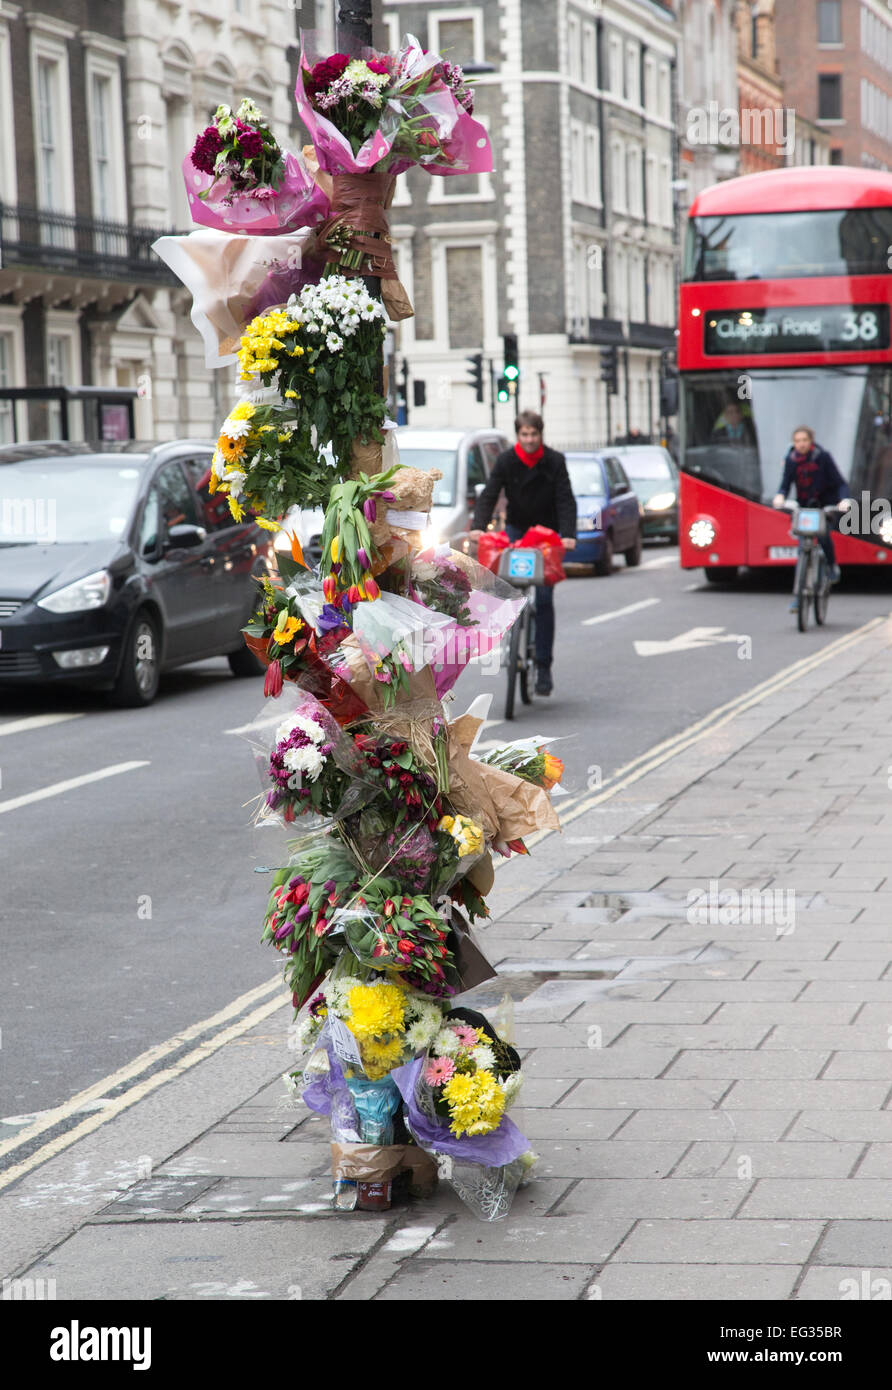 Floral Tributes to cyclist killed by a lorry in central London - Stock Image